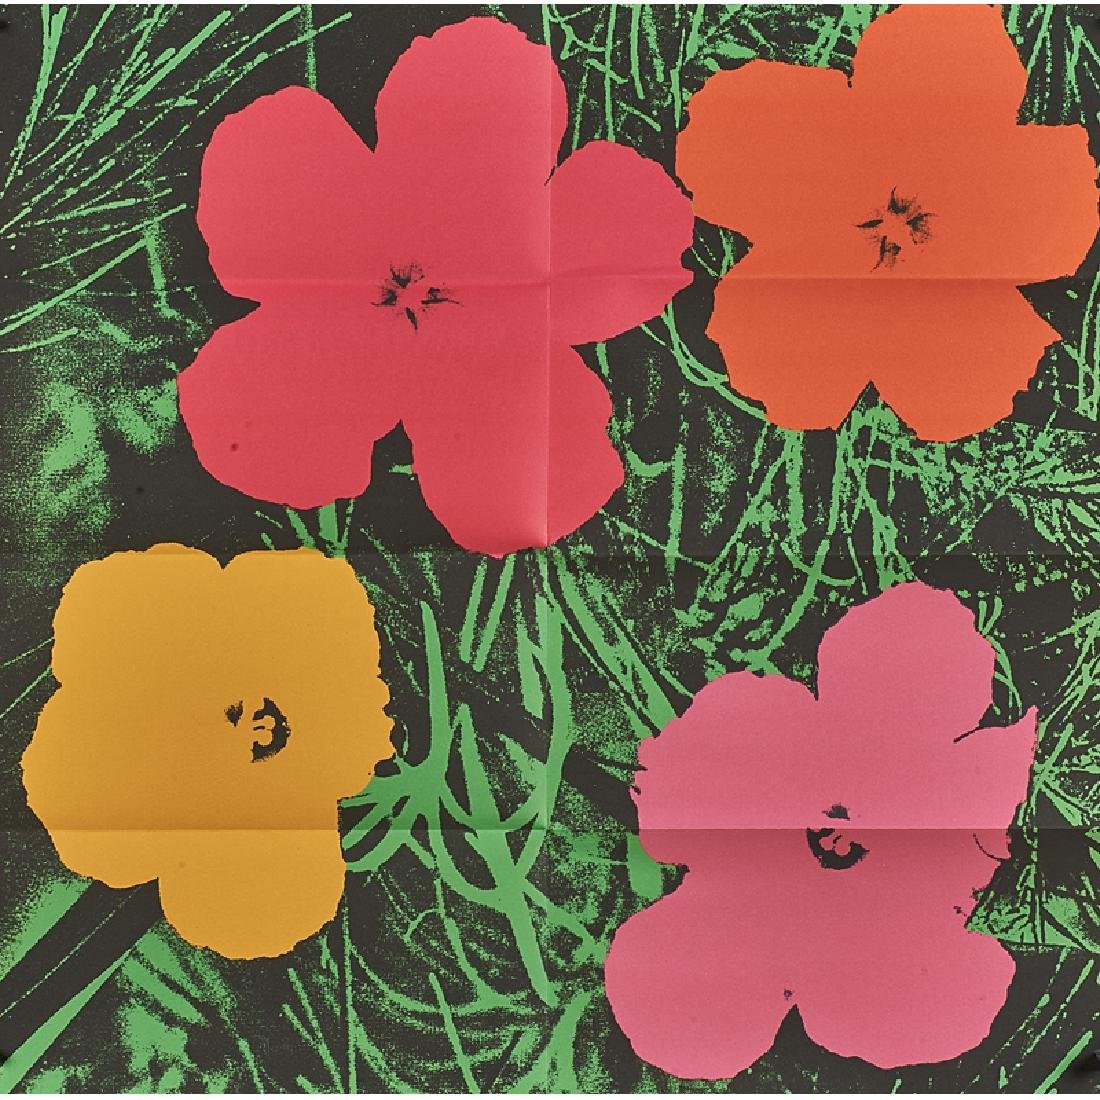 ANDY WARHOL (American, 1928-1987)